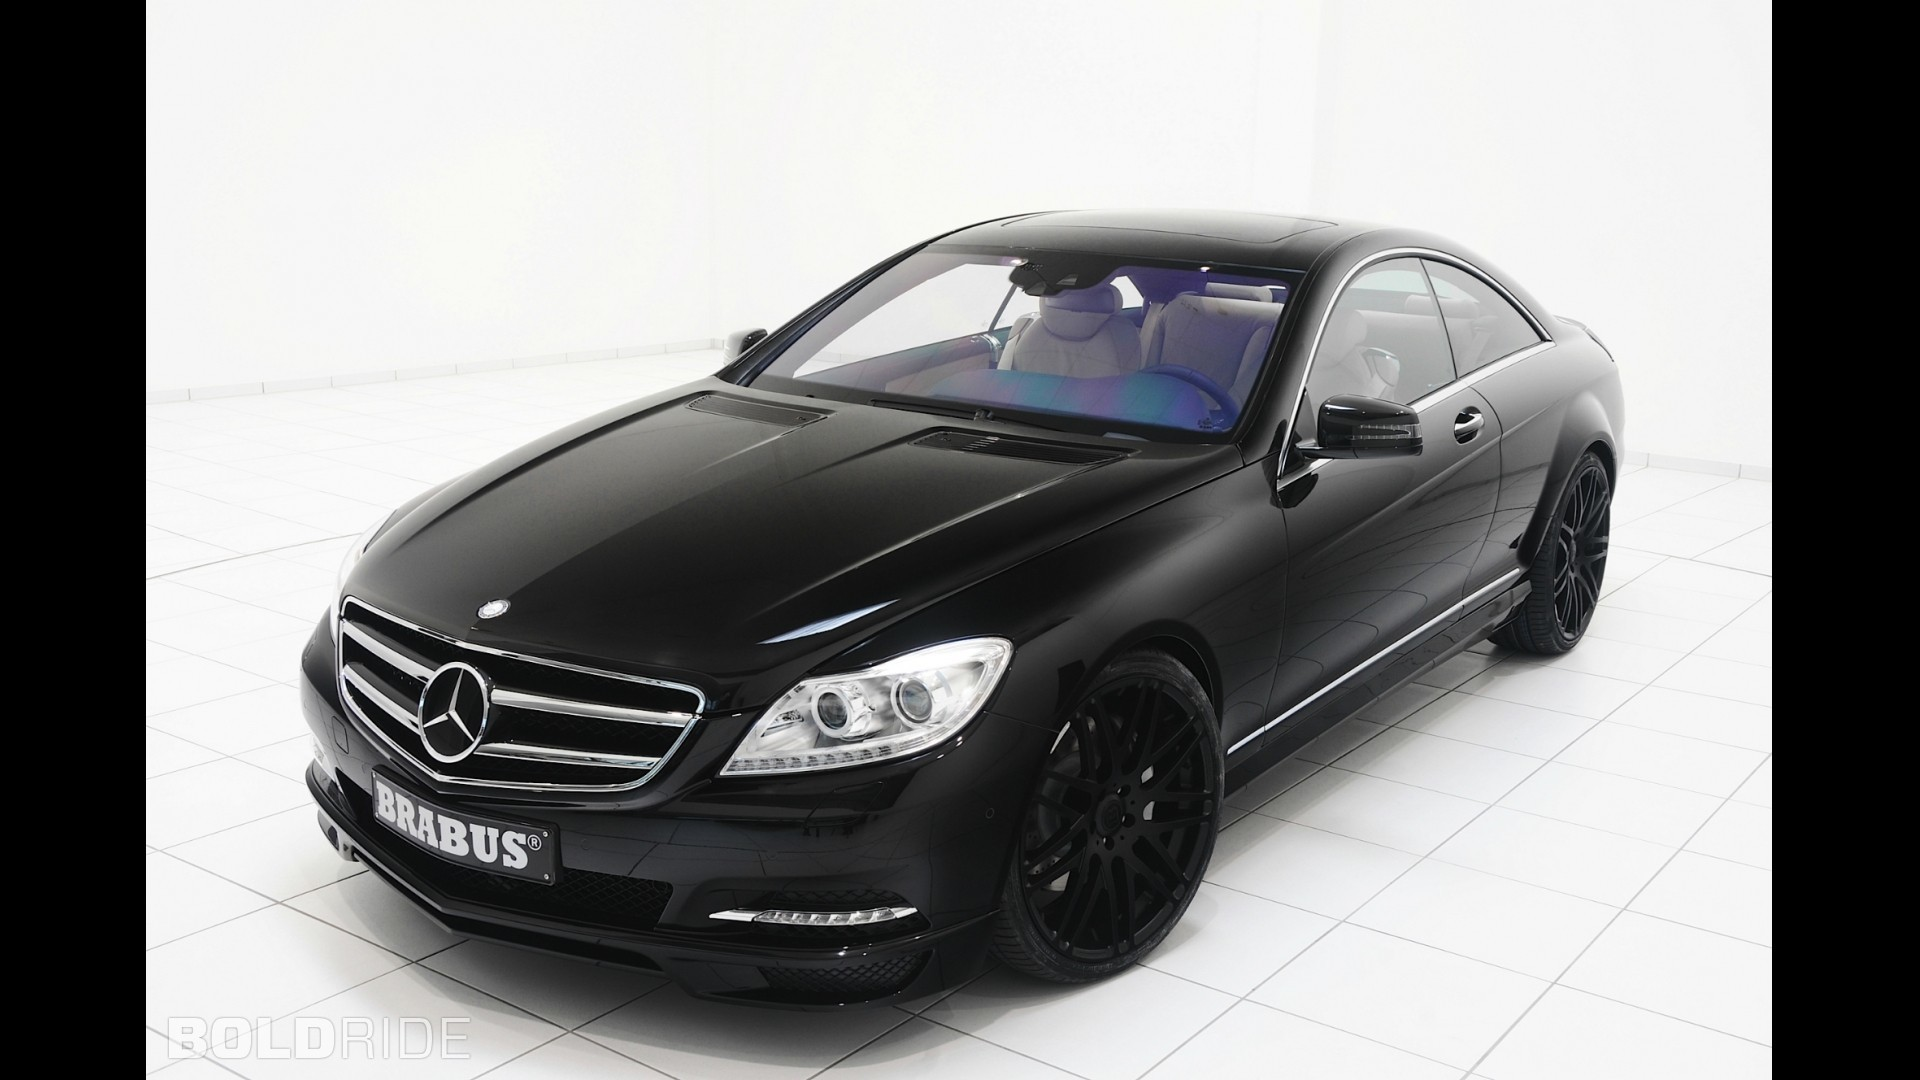 black cars brabus Mercedes-Benz HD Wallpaper